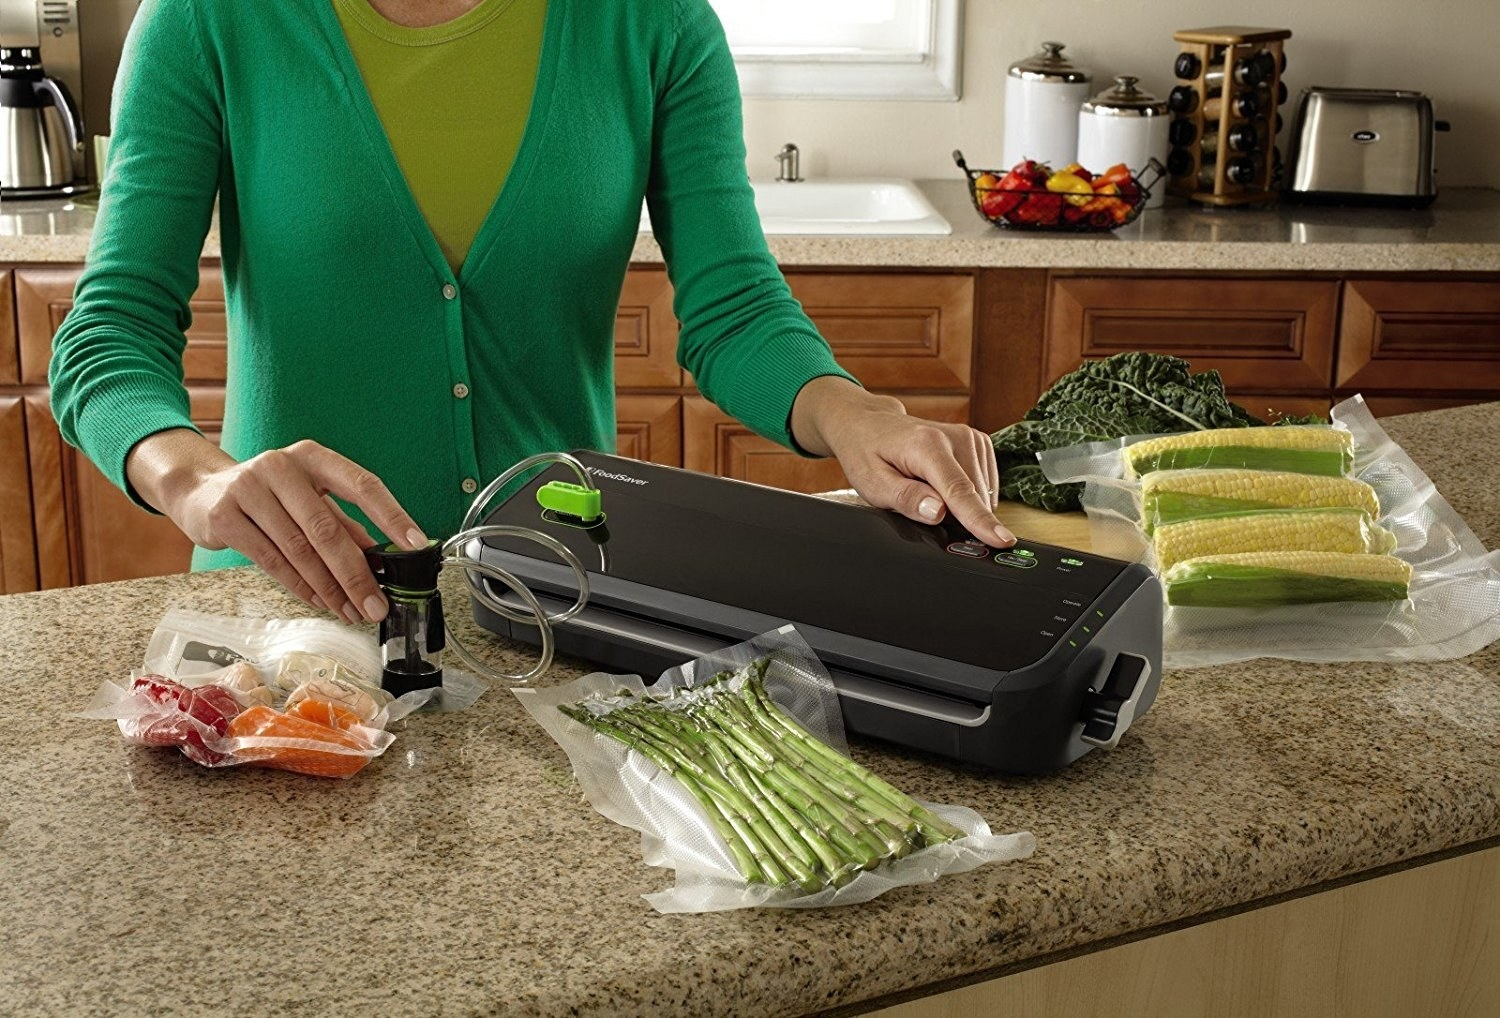 "Set Includes 3-quart bags, 2-gallon bags, one 11"" x 10"" roll, vacuum, and accessory hose. Keeps food fresh for up to five times longer and prevents freezer burn. Be sure to allow your food to reach room temperature before vacuum sealing it. Some foods that can't be vacuum sealed include: soft cheeses, raw bananas or mushrooms, whole apples, and certain other raw vegetables. Find a full list and more FAQs regarding the FoodSaver vacuum sealer here. Check out our post on the shelf life of different foods here.Promising review: ""I've had three different models of the FoodSaver over the past 10 years, and this is the best yet. It's lightweight, easy to use, great seal, smaller shelf/counter footprint, and the cord wraps inside the bottom of the case. The cord is under three feet long, so you do have to have space on the counter close to an outlet to use this. It does well with all the freezer bags I've used, and with the suction tube for canisters and the refrigerator bags."" —BillPrice: $69.99. Get extra bags for $18.45."